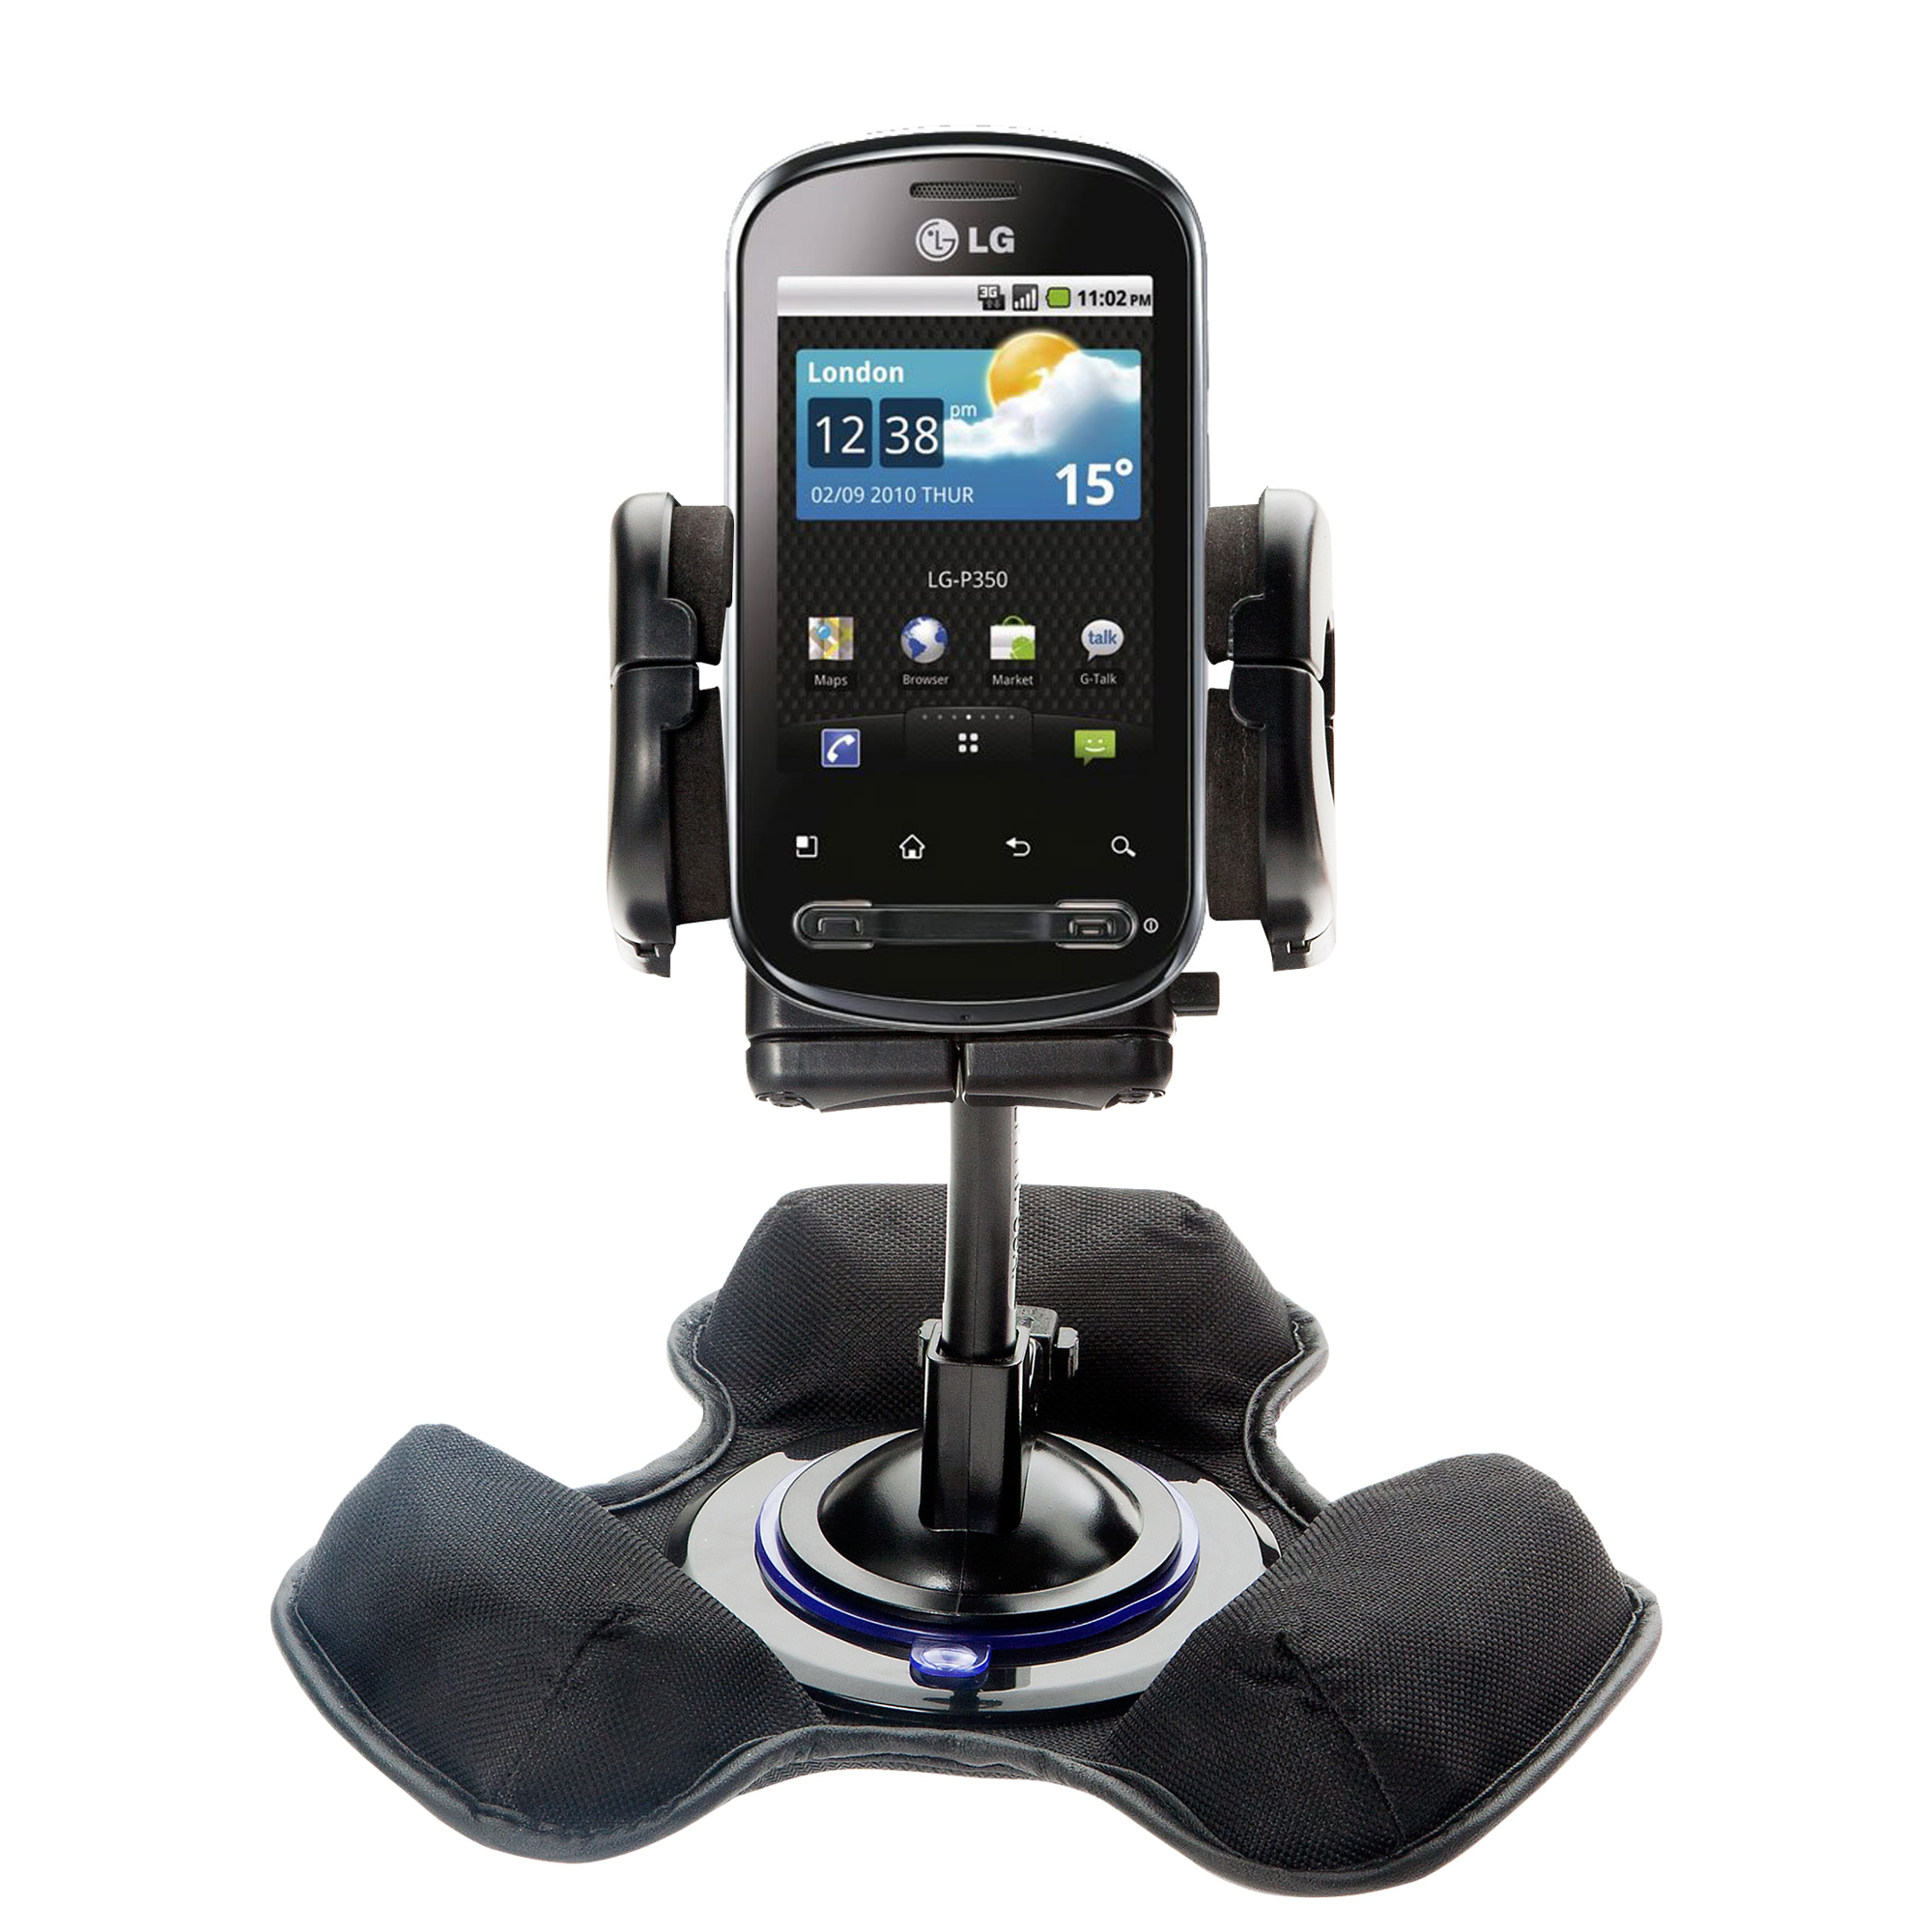 Dash and Windshield Holder compatible with the LG Pecan